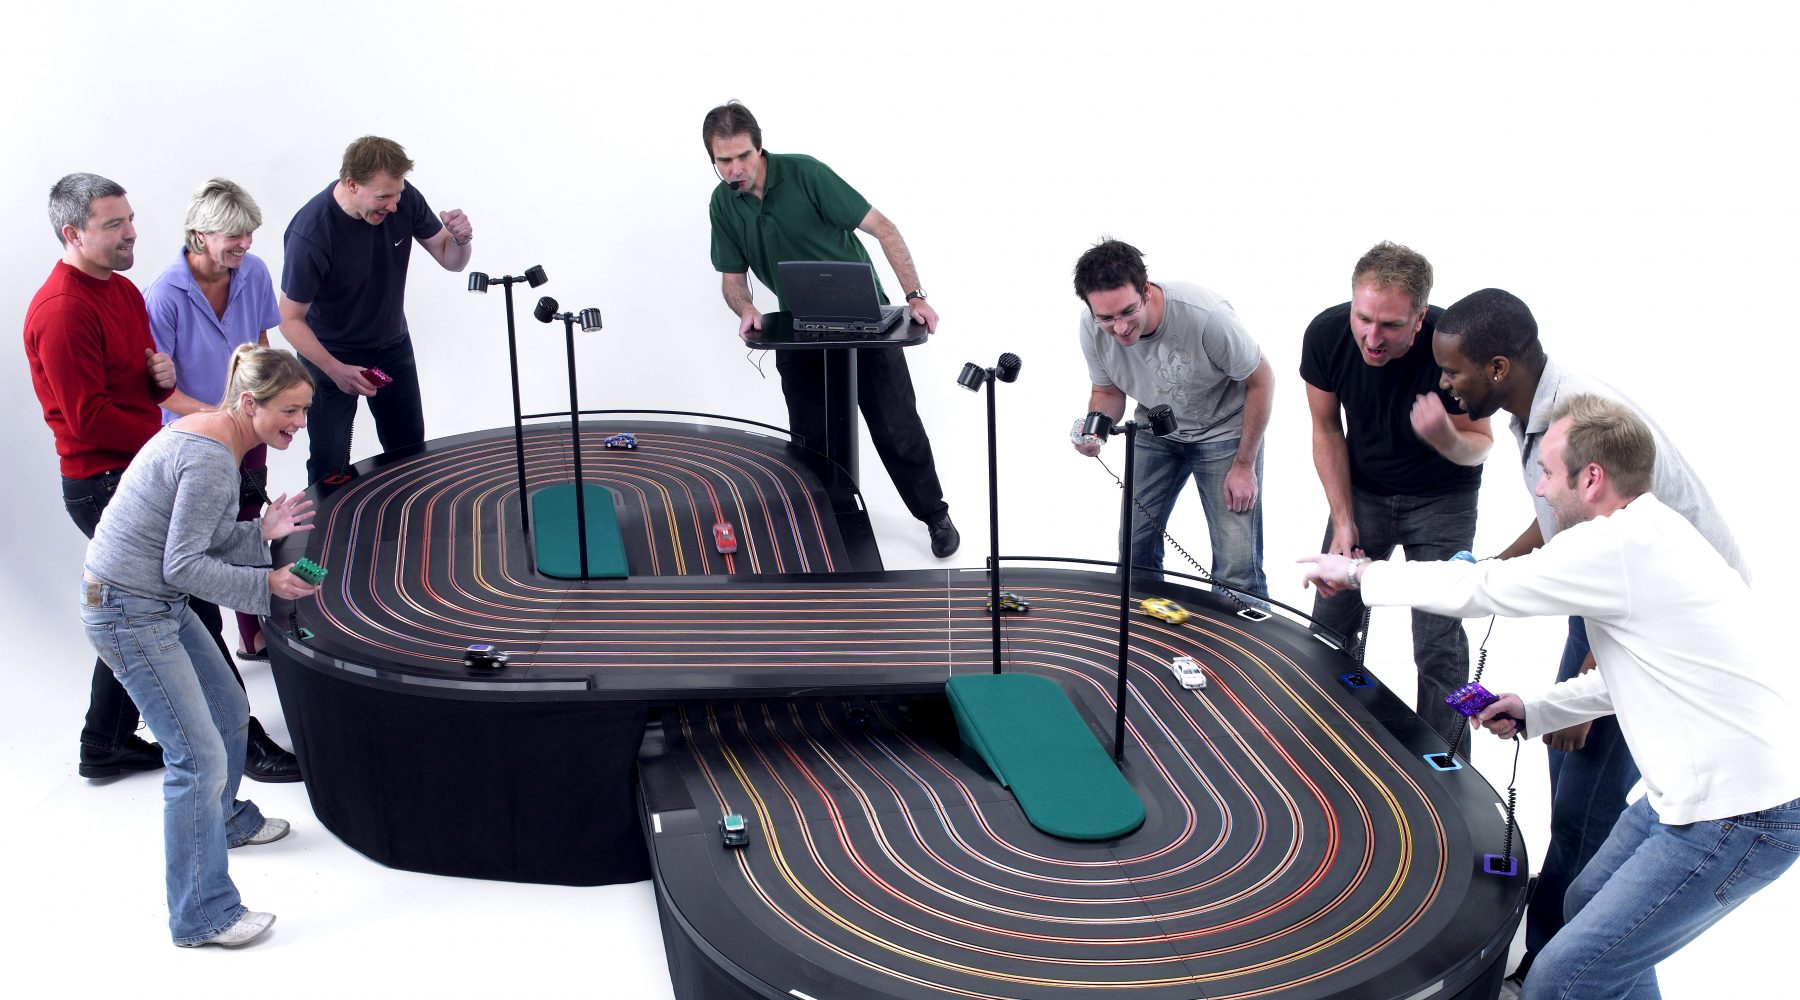 miniracing.com giant 8 lane scalextric track being used in a competition at an event